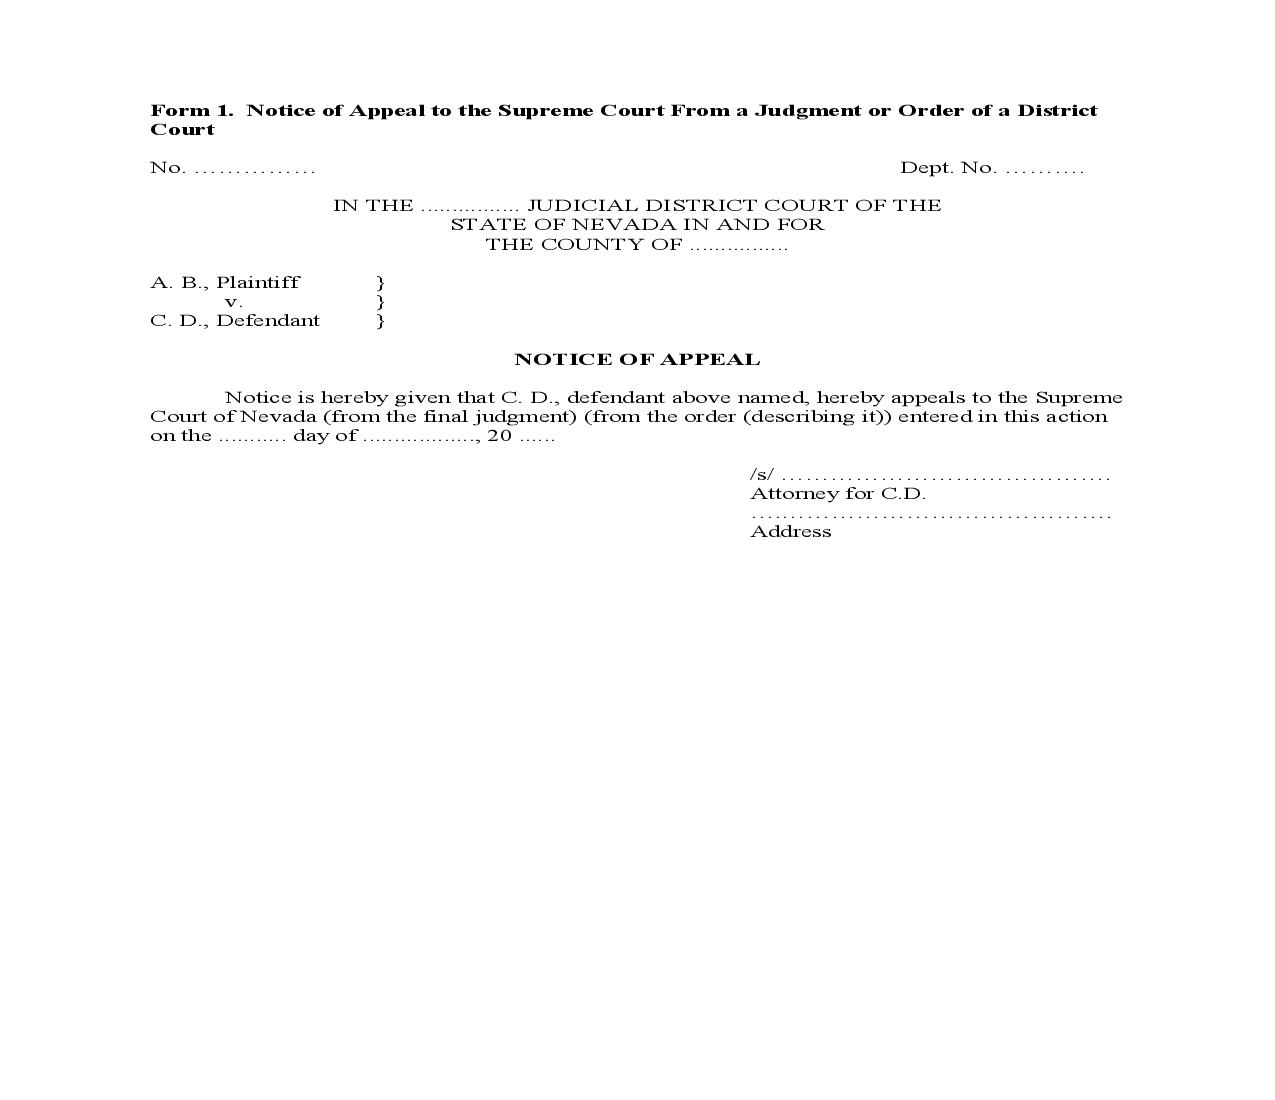 Notice Of Appeal To Supreme Court From Judgment Or Order Of District Court {1} | Pdf Fpdf Doc Docx | Nevada